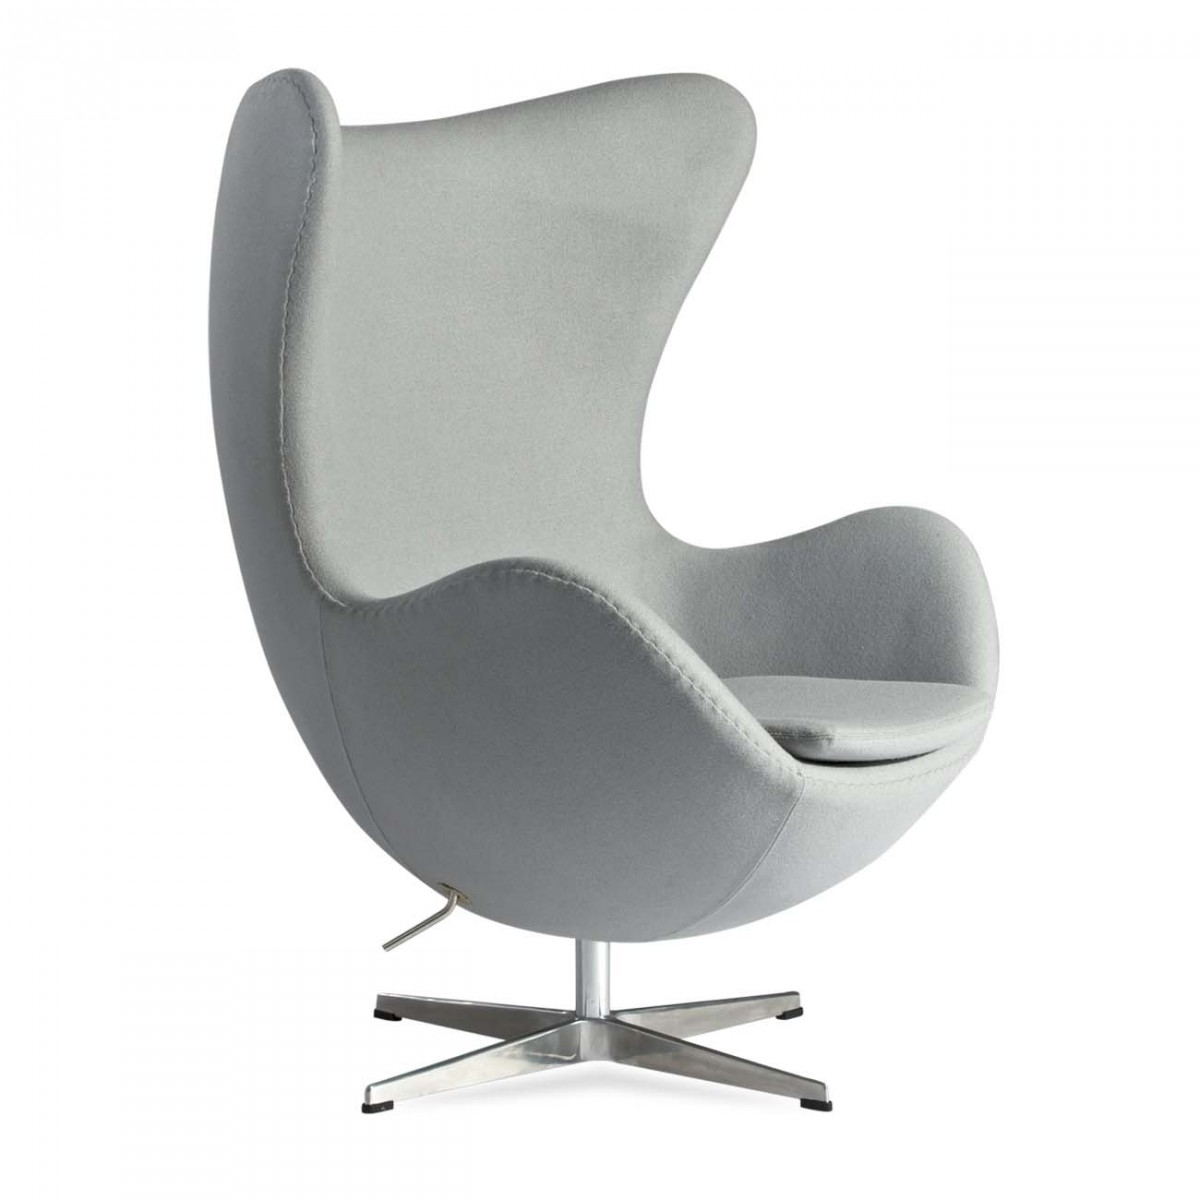 egg-chair-backtilt-inspired-by-arne-jacobsen-03_1